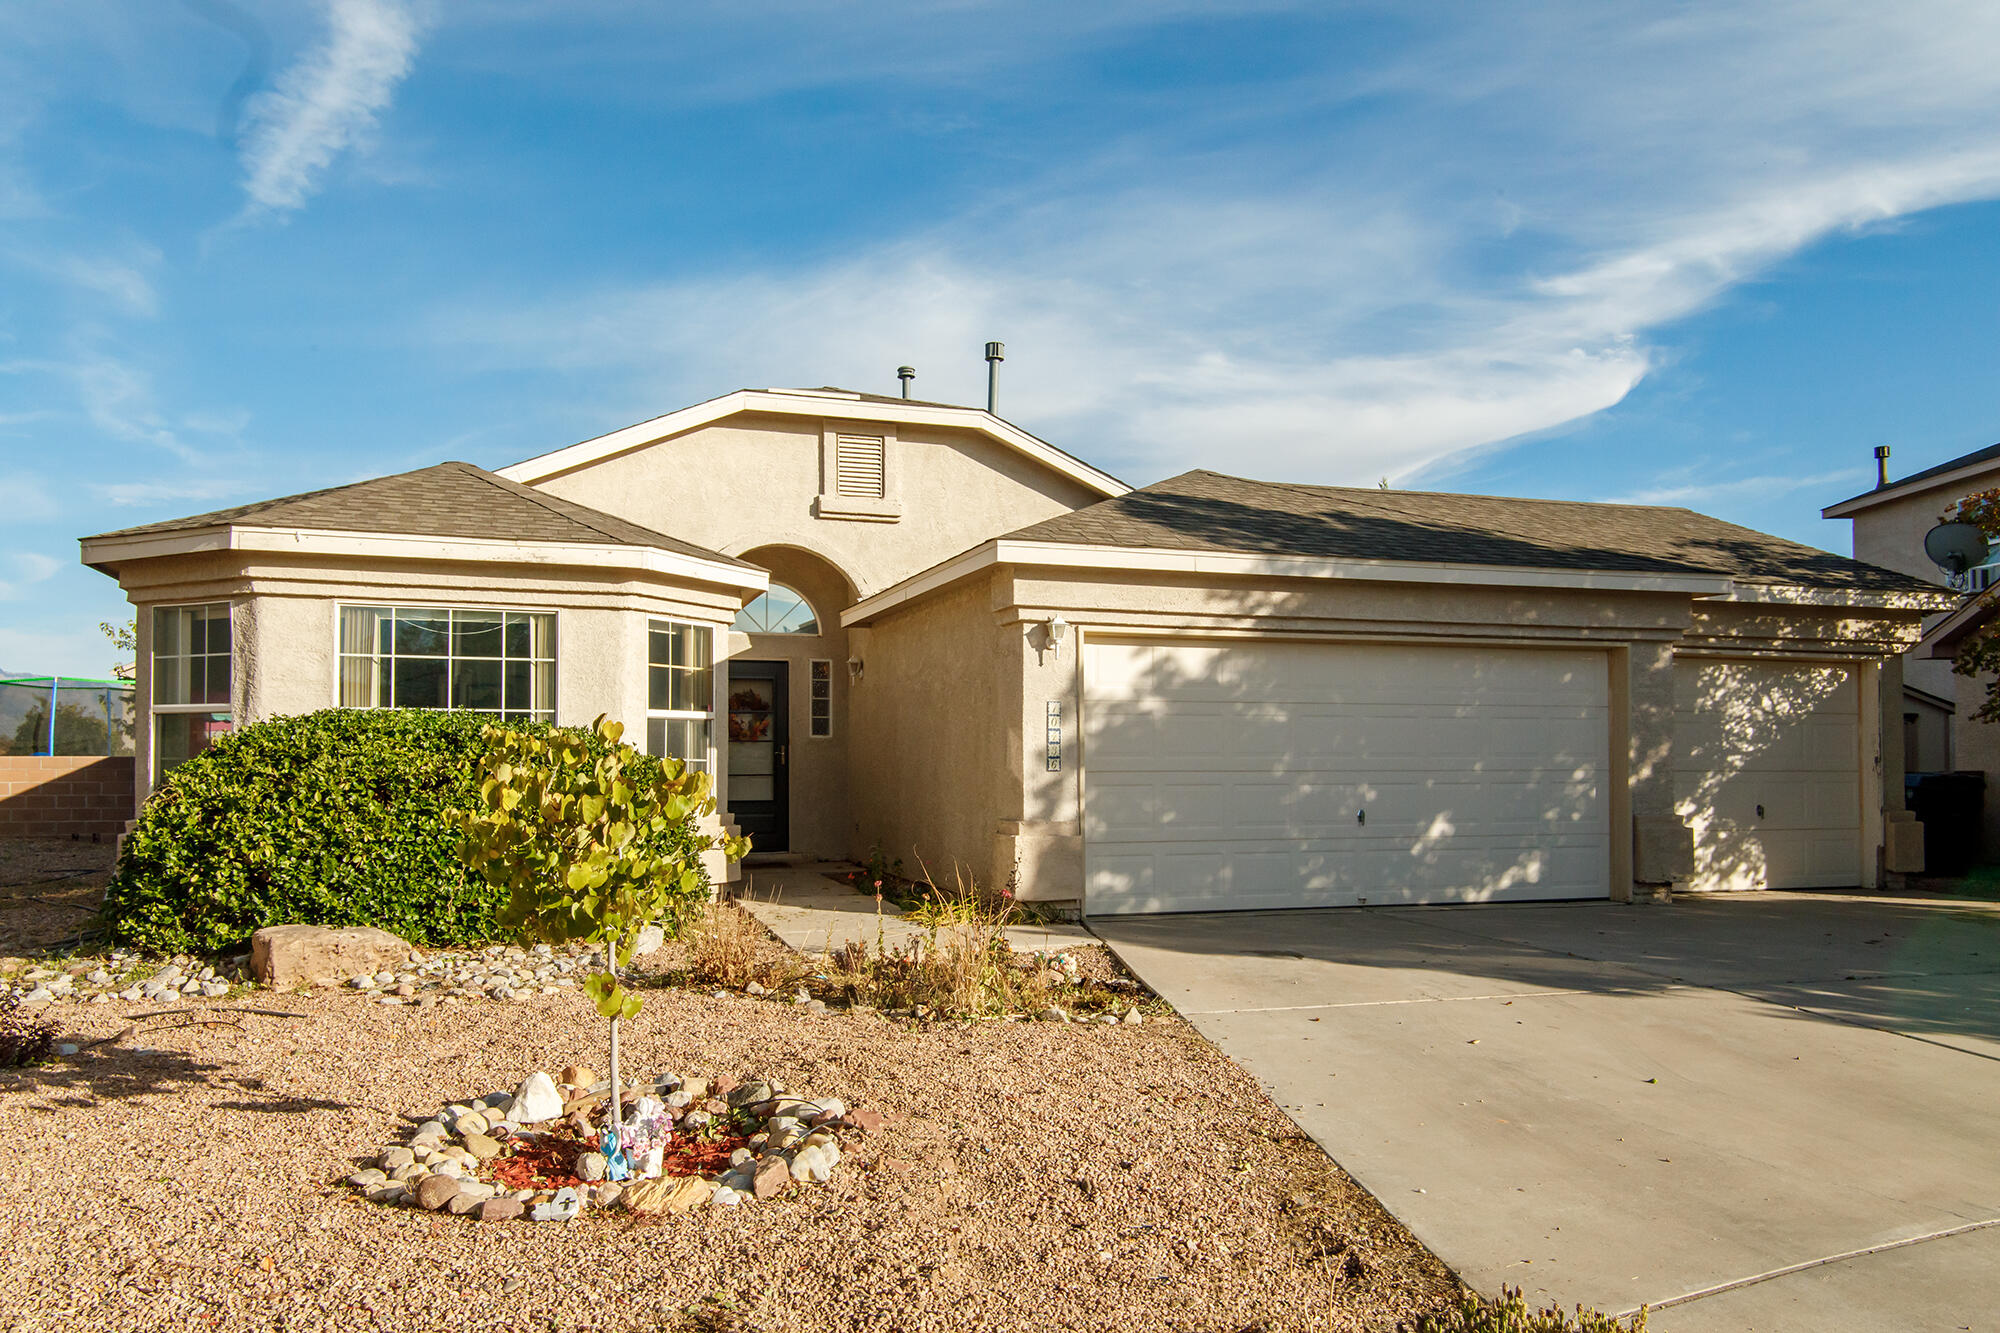 Charming one story home on a cul-de-sac lot in Ventana Ranch.  Nearby parks, playgrounds, recreational facilities, walking trails and more!  Vaulted ceiling and gas fireplace in the great room.  Large bedrooms, ceiling fans throughout and decorative niches and ledges.  Owned Solar saves you tons of $$$$ with a $9 monthly utility bill!  Brand new water heater.  Wrap around yard provides plenty of space to entertain and play while surrounded by mature landscaping.  Terrific location, fantastic price!!  Welcome home!